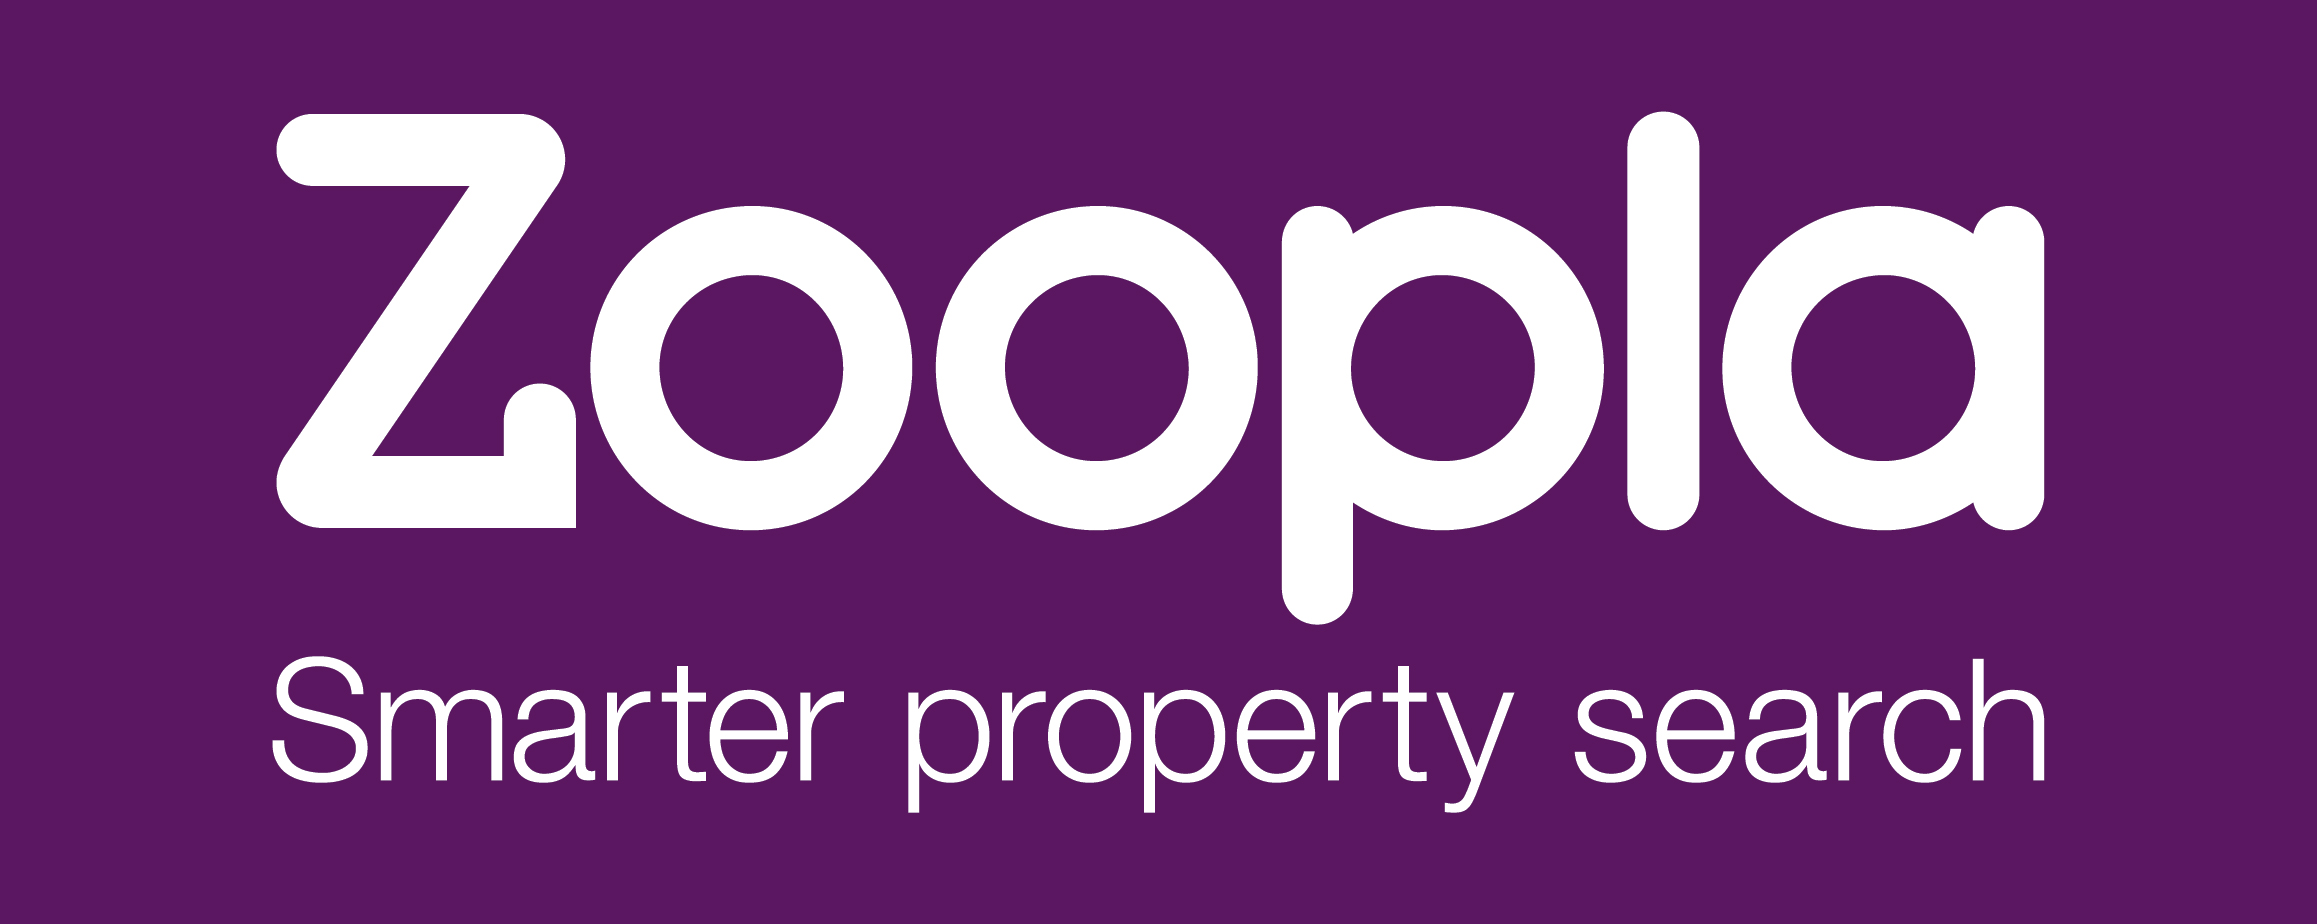 IME Property Joins The Ranks Of Zoopla